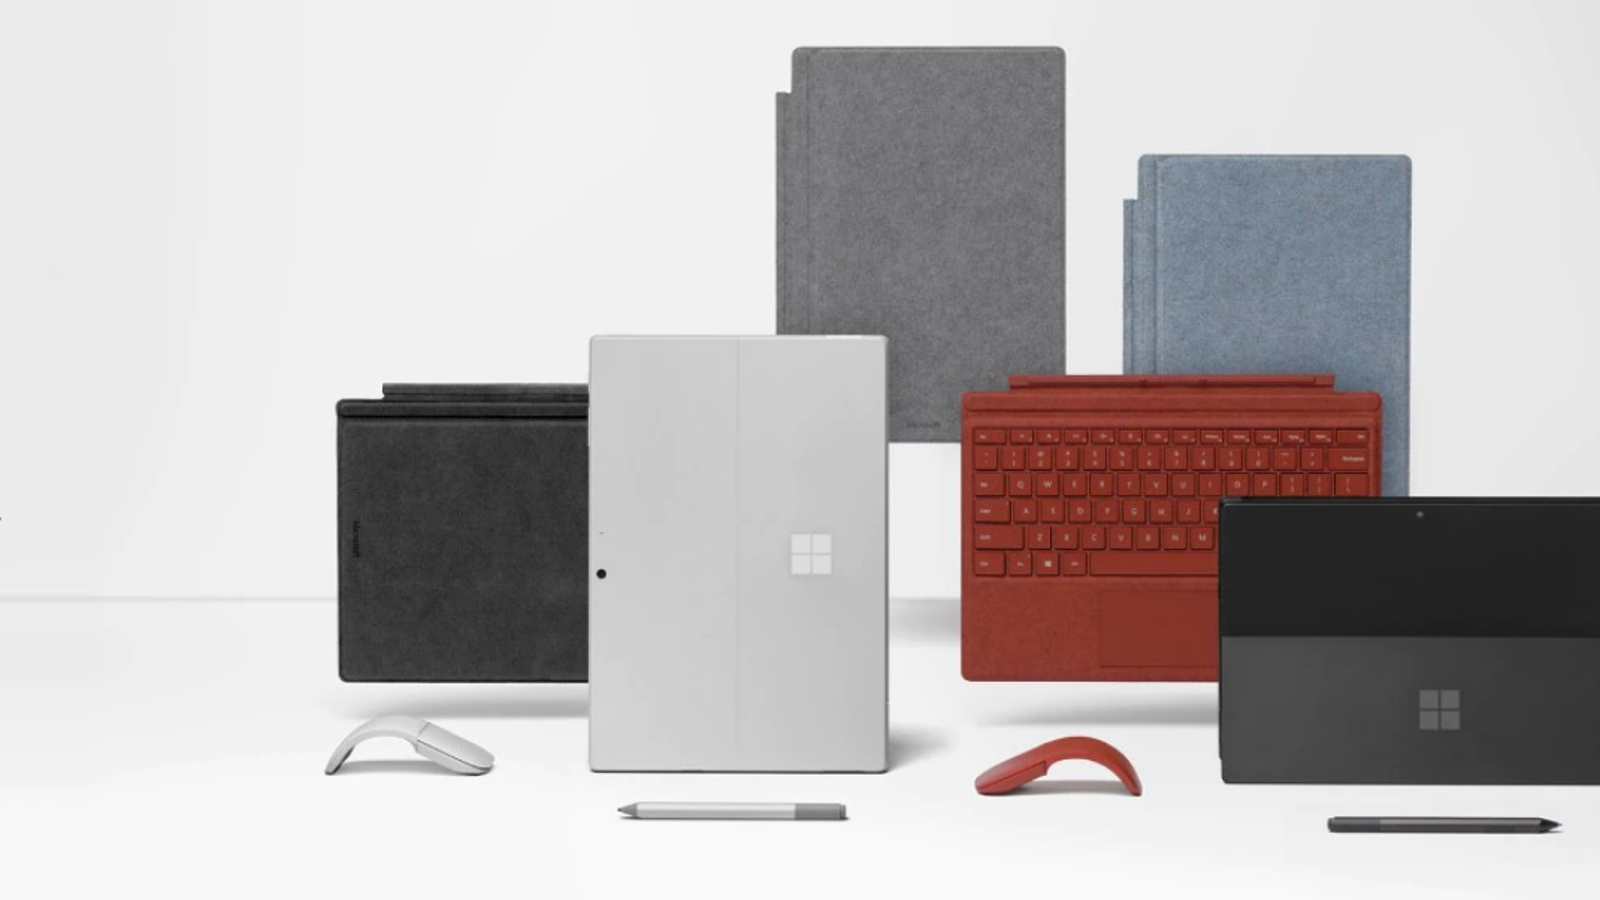 How to Pre-order Microsoft's Surface Pro 7, Surface Laptop 3, and Surface Pro X